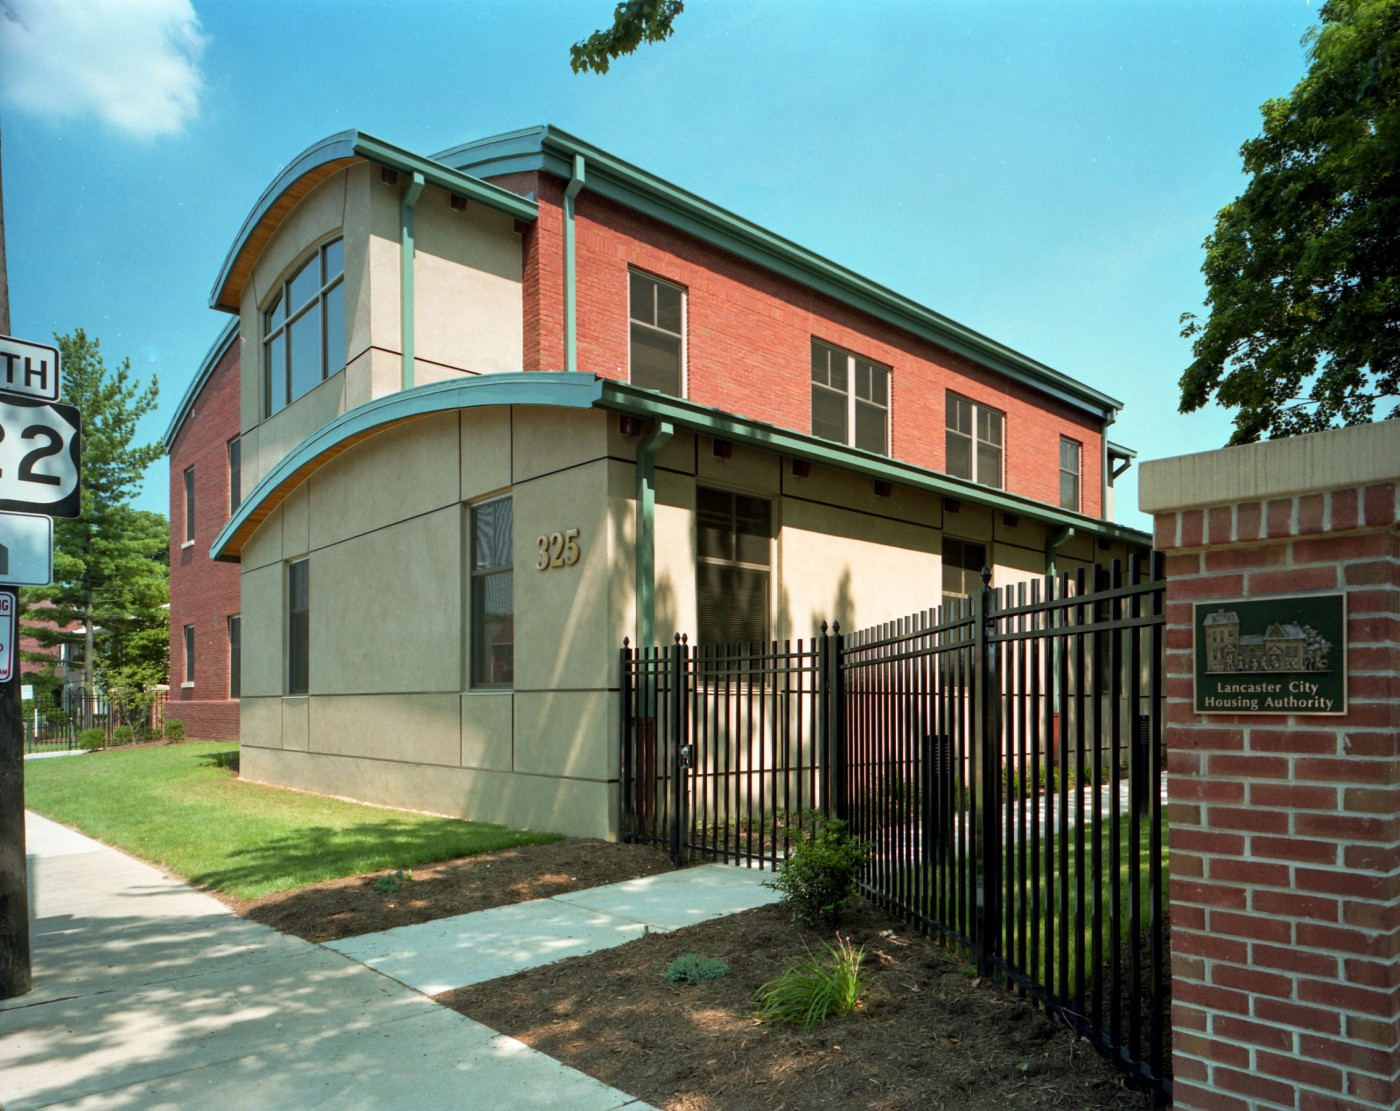 Lancaster City Housing Authority Office Building